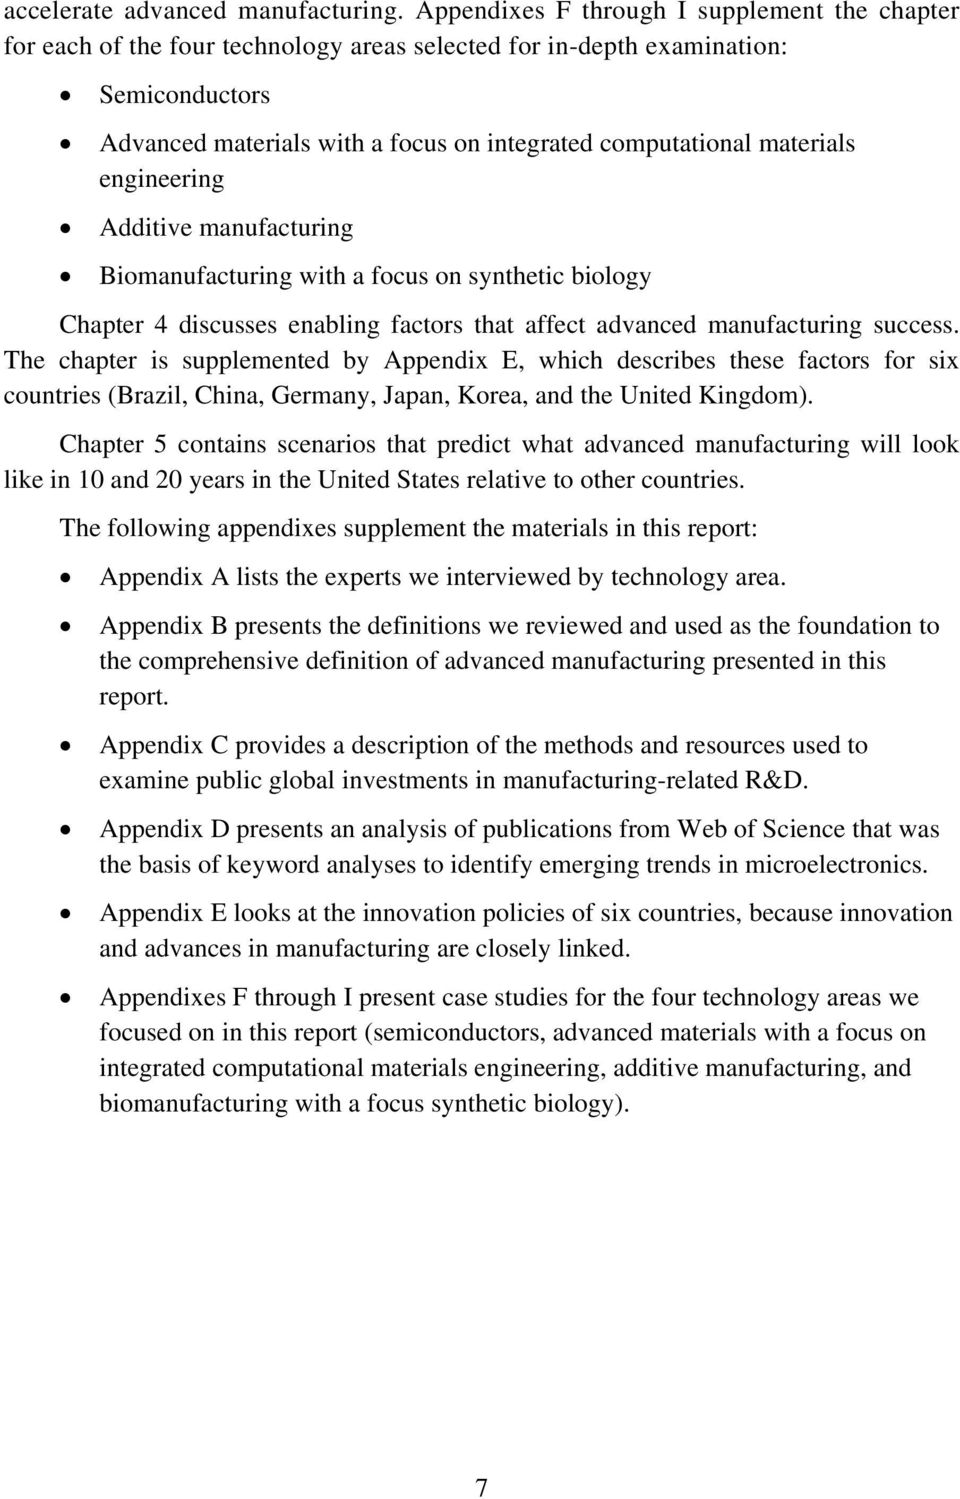 materials engineering Additive manufacturing Biomanufacturing with a focus on synthetic biology Chapter 4 discusses enabling factors that affect advanced manufacturing success.